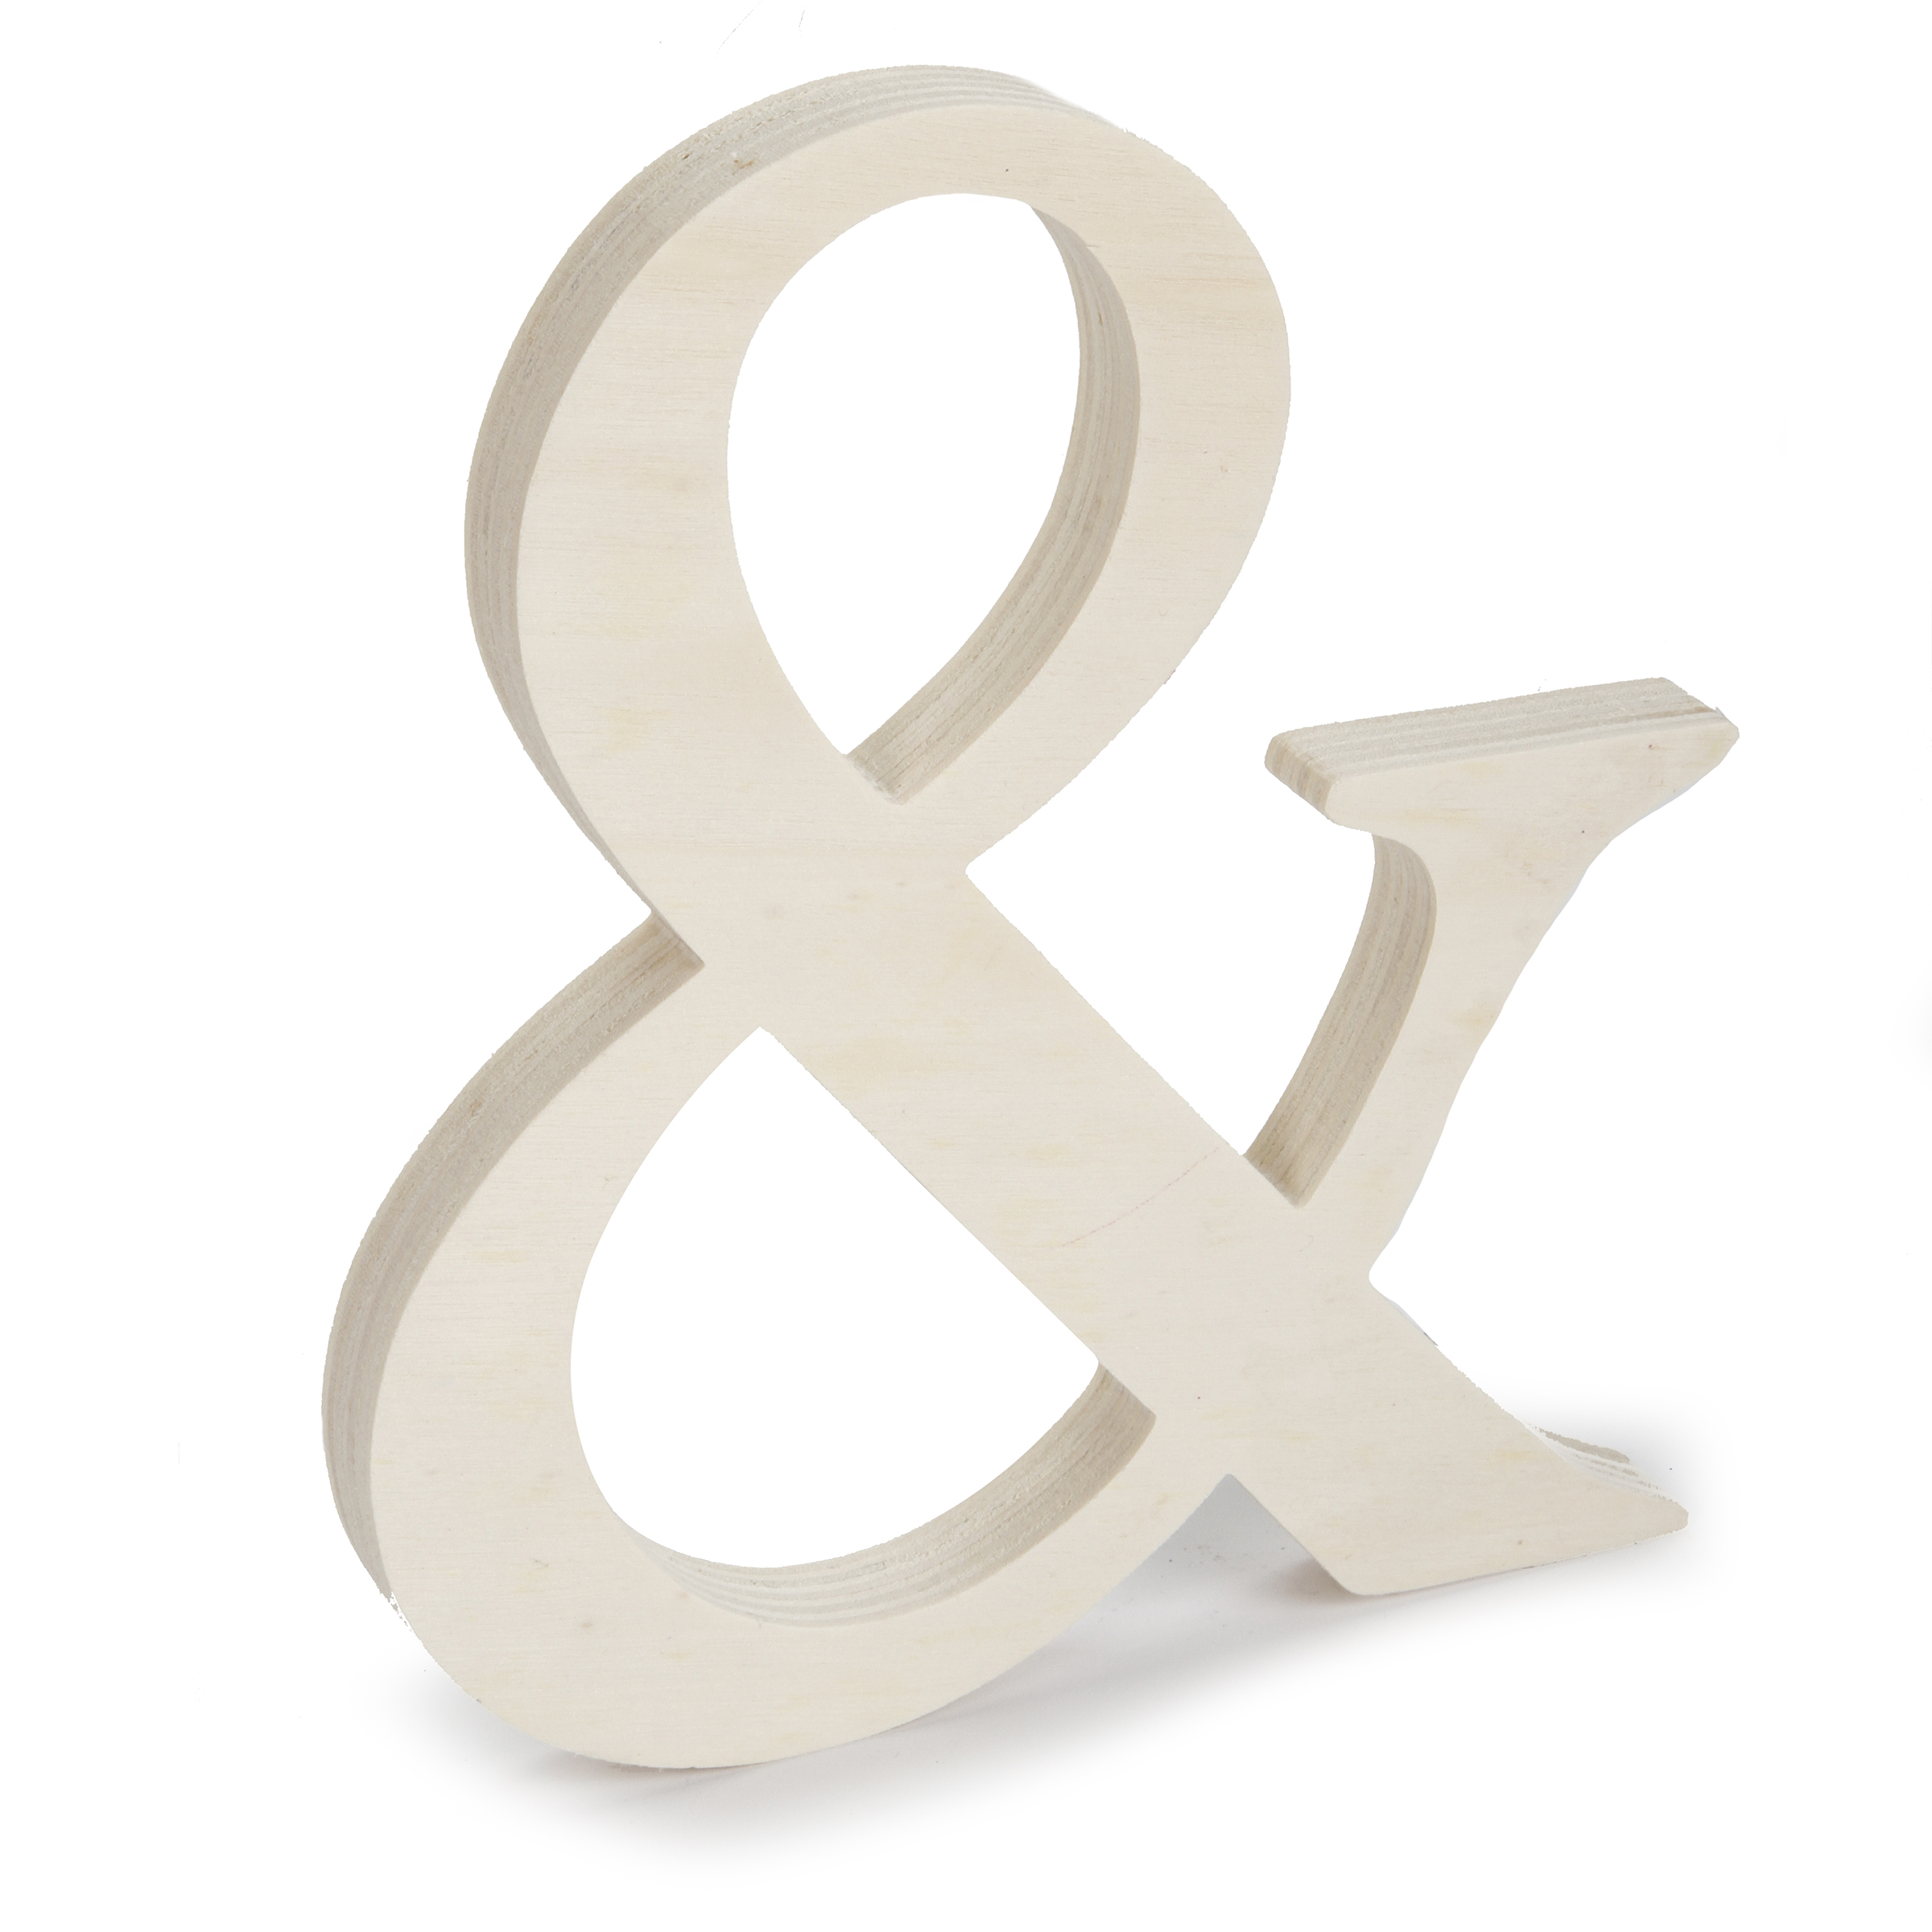 Fancy Unfinished Wood Letter Ampersand Symbol, 7-1/2 inches